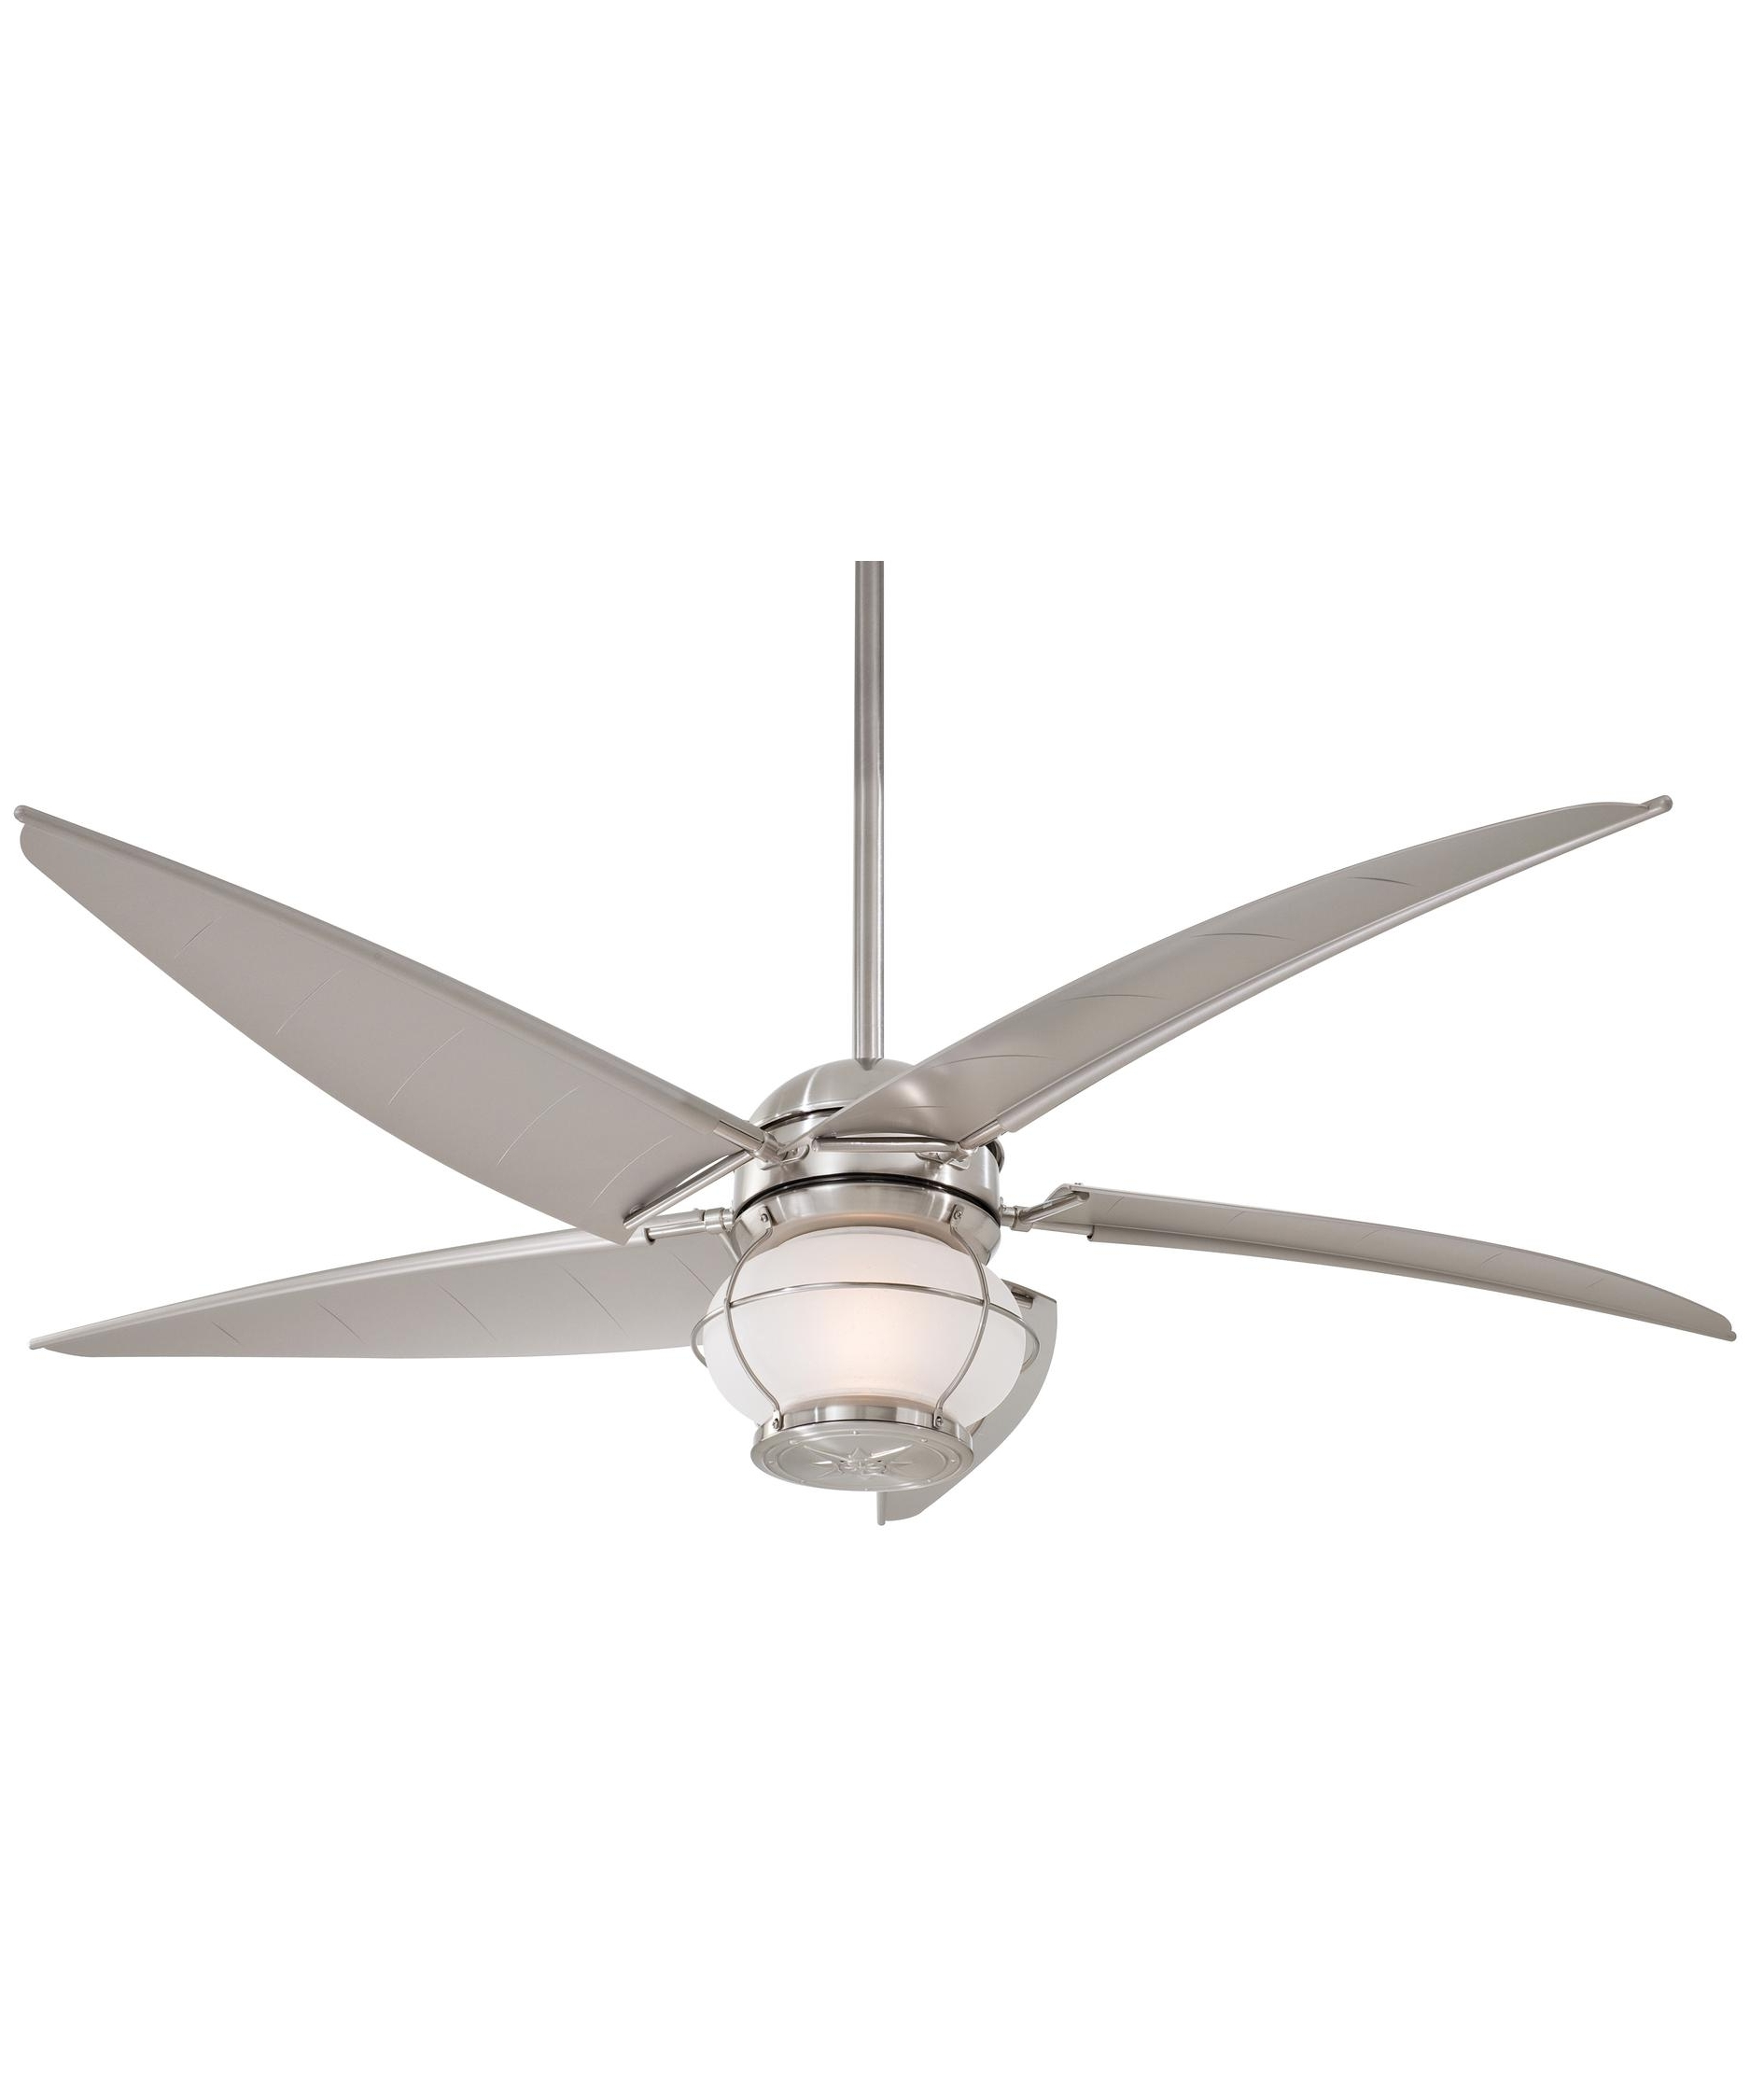 Brushed Nickel Outdoor Ceiling Fans With Light Inside Most Current Minka Aire F579 Magellan 60 Inch 5 Blade Ceiling Fan (View 6 of 20)